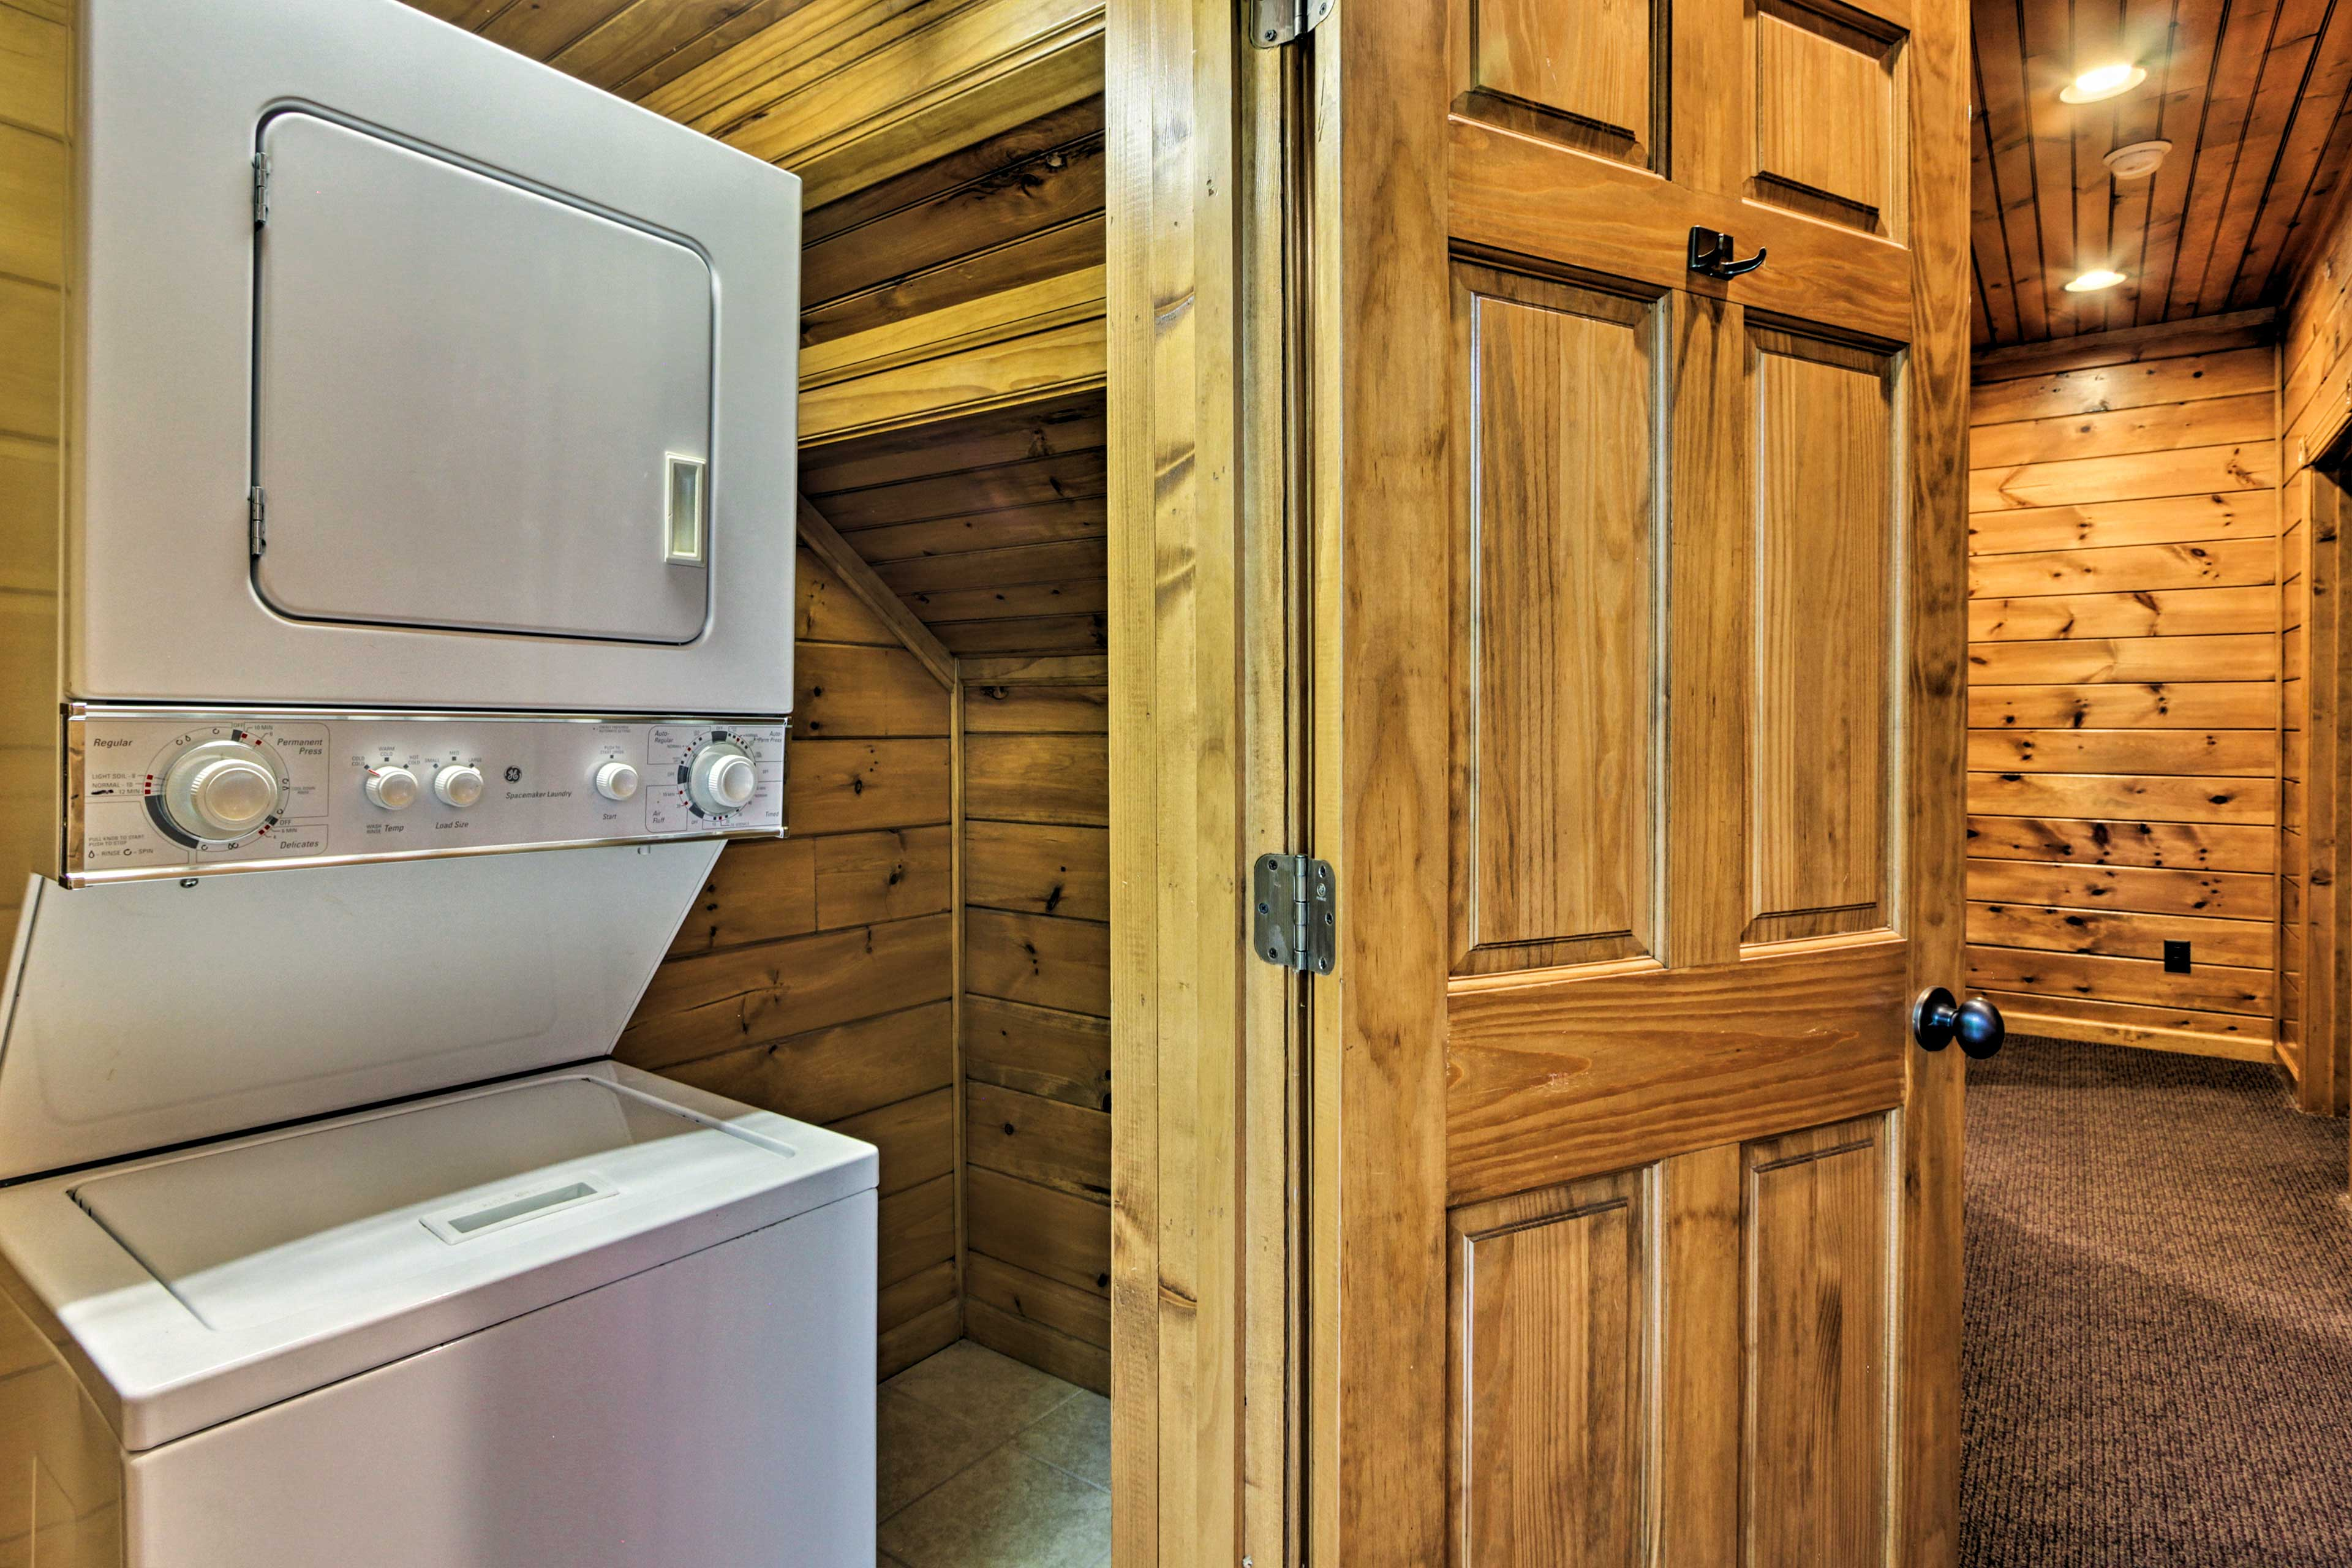 Pack light and take advantage of the on-site laundry machines.